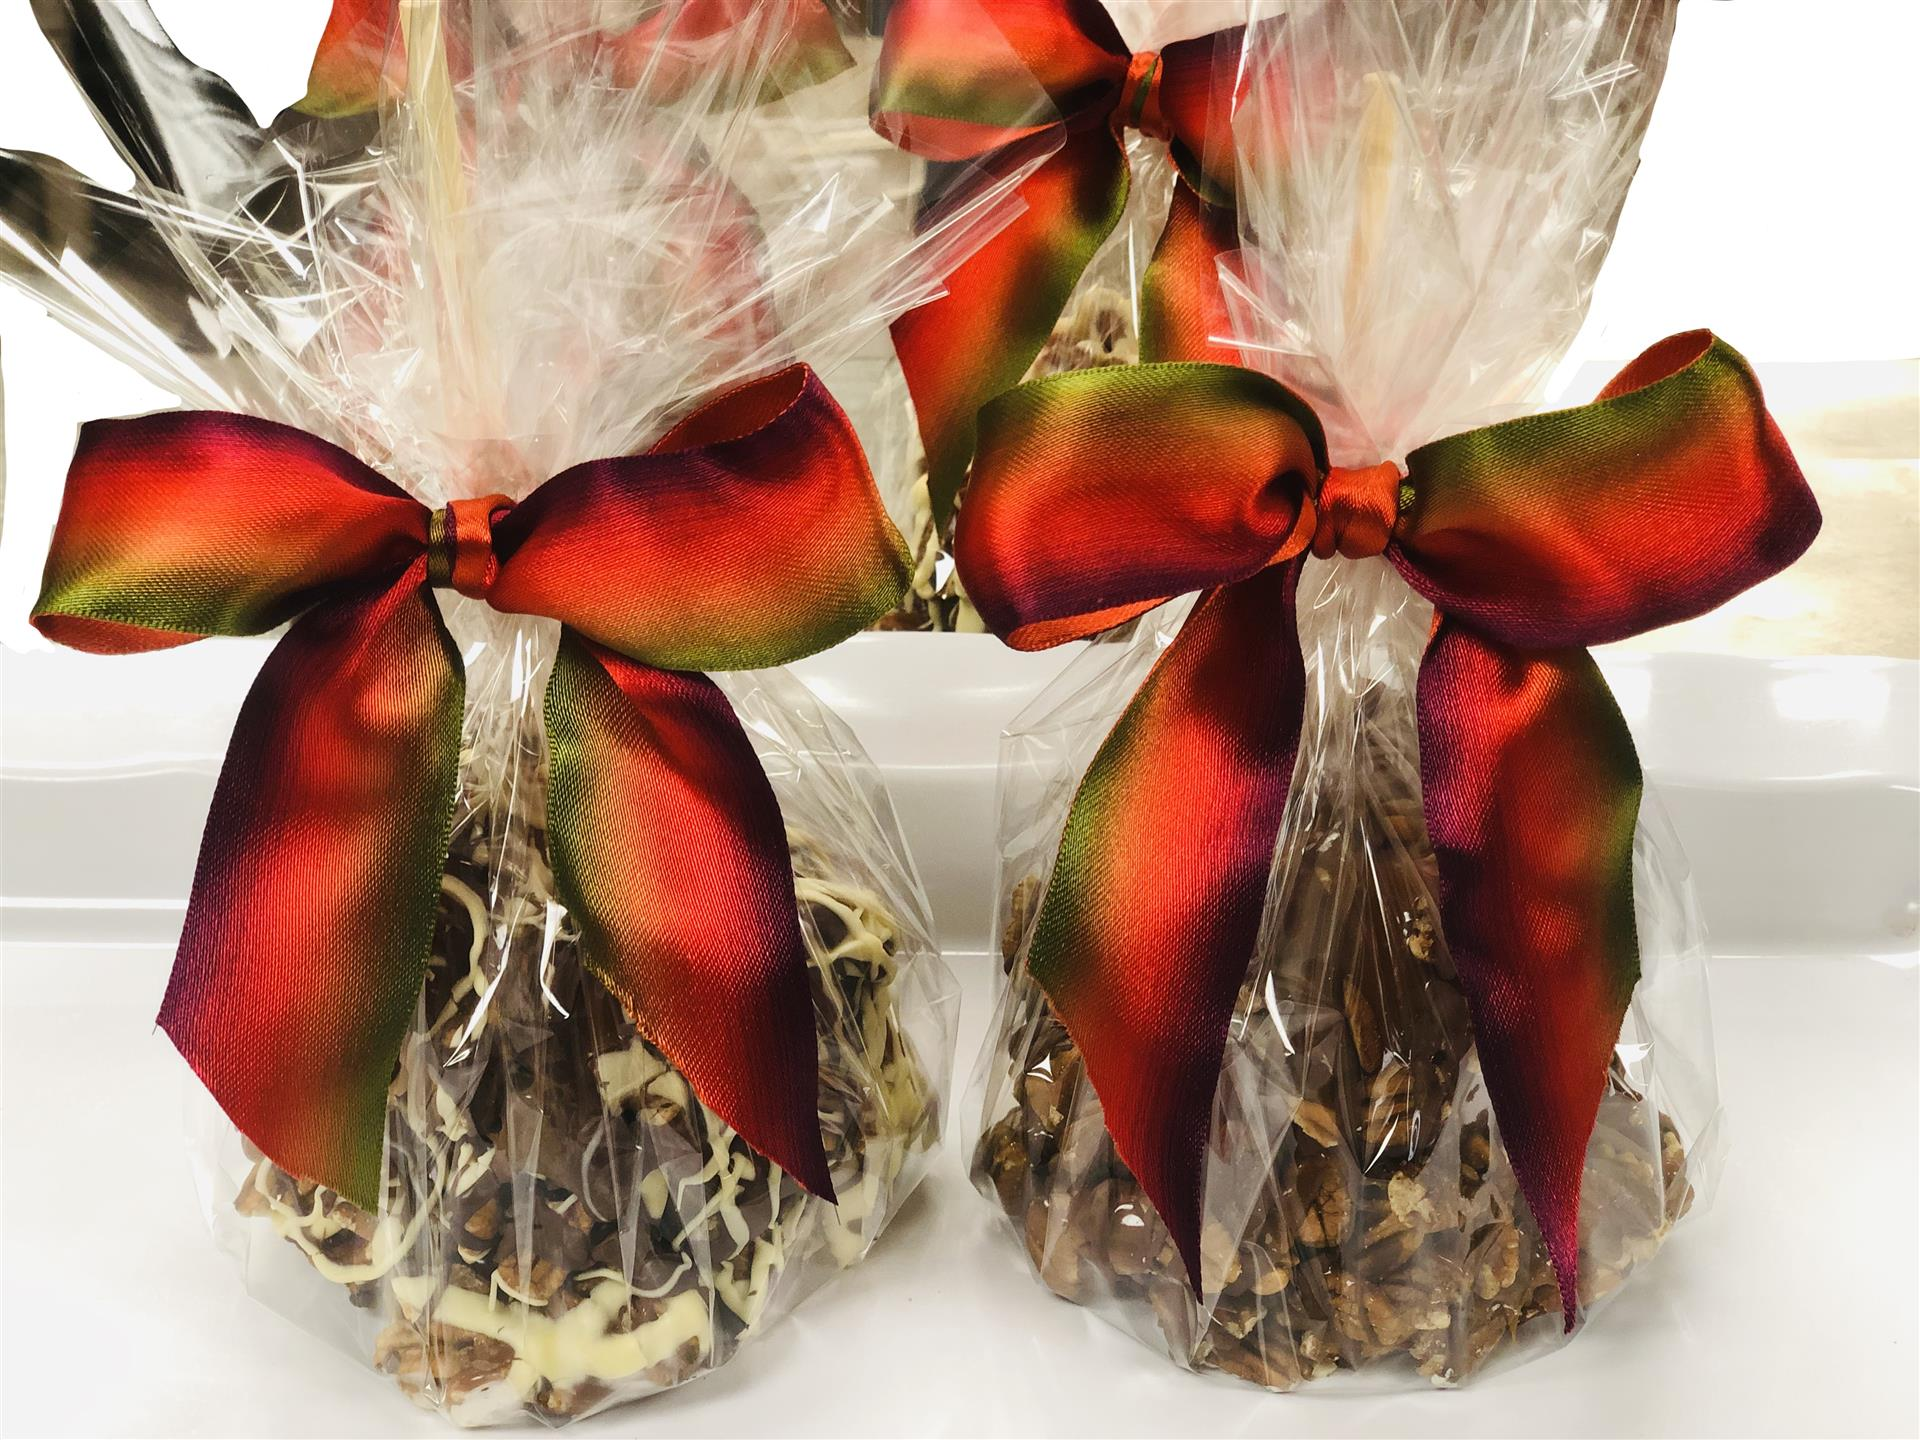 two caramel apples wrapped up